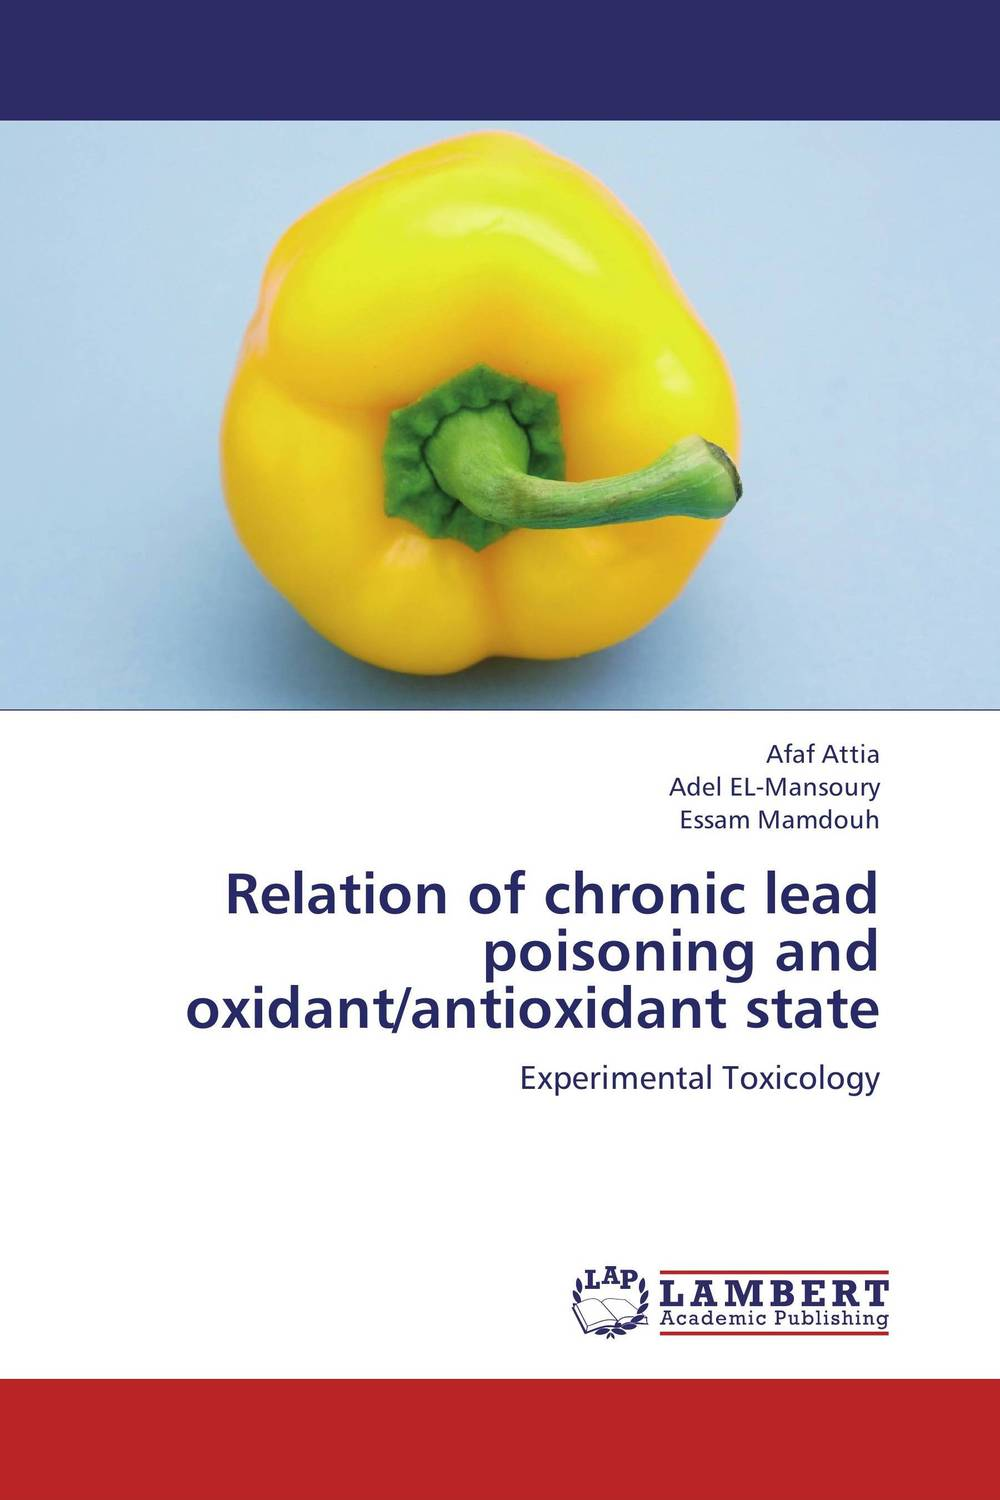 Relation of chronic lead poisoning and oxidant/antioxidant state evaluation of vitamin a supplements in ghanaian postpartum mothers